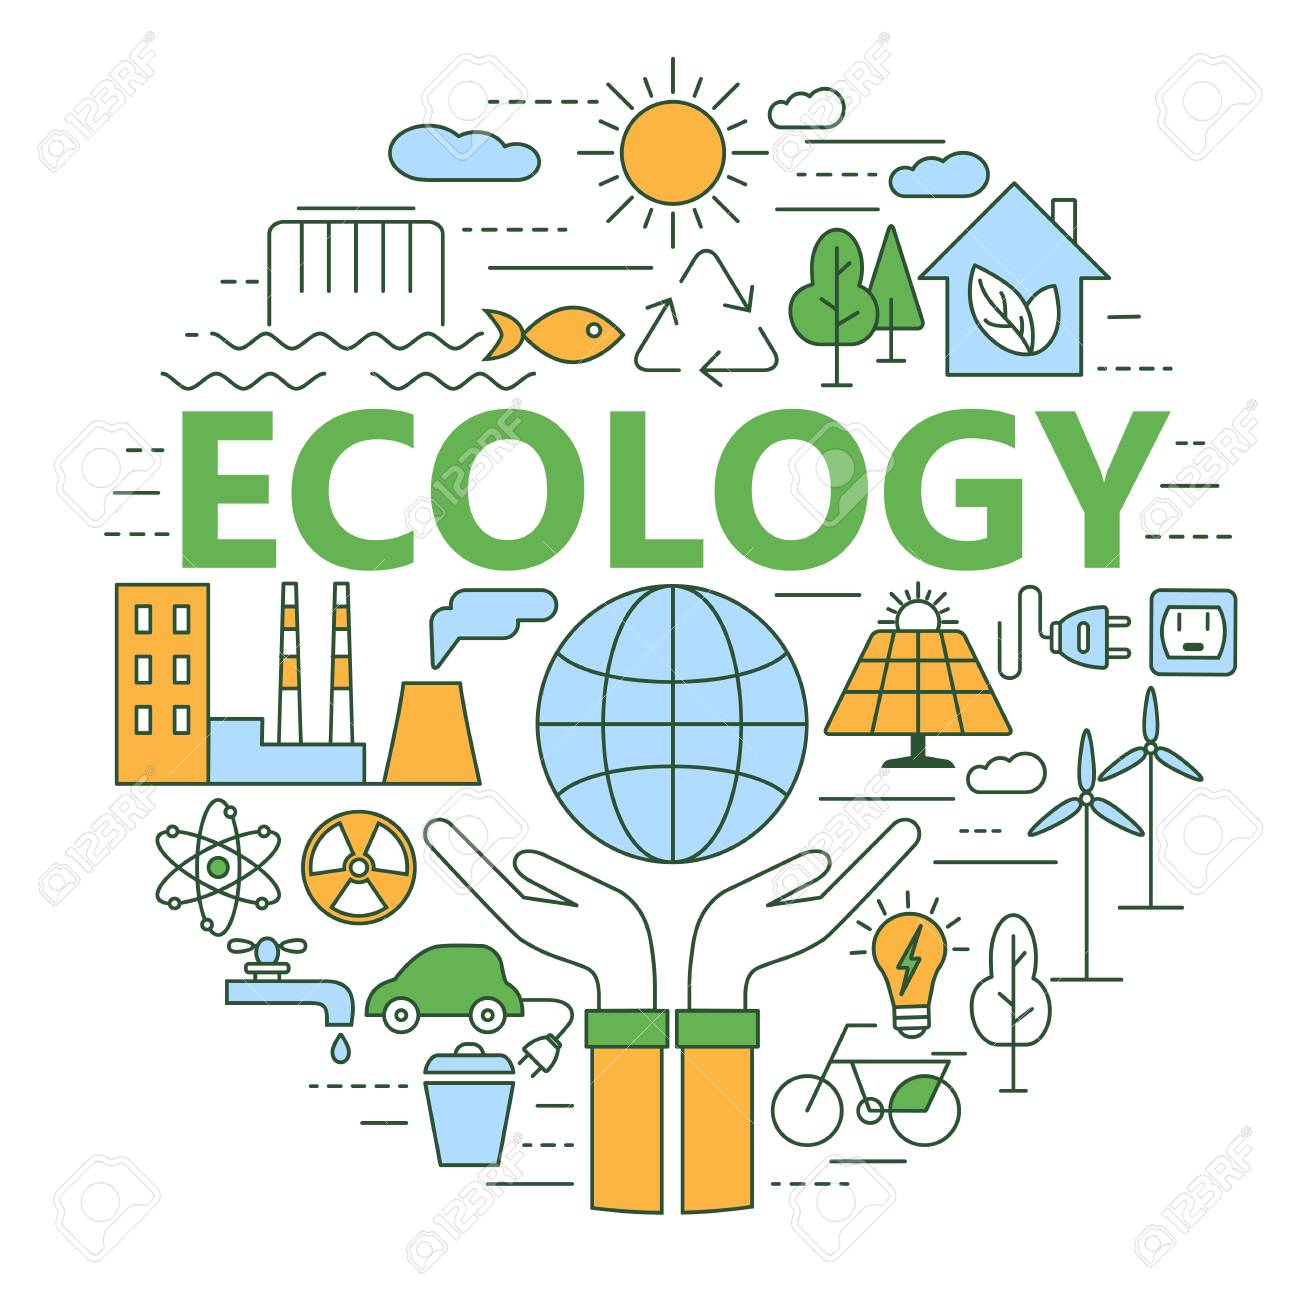 Ecology and environment concept illustration. - 84263161